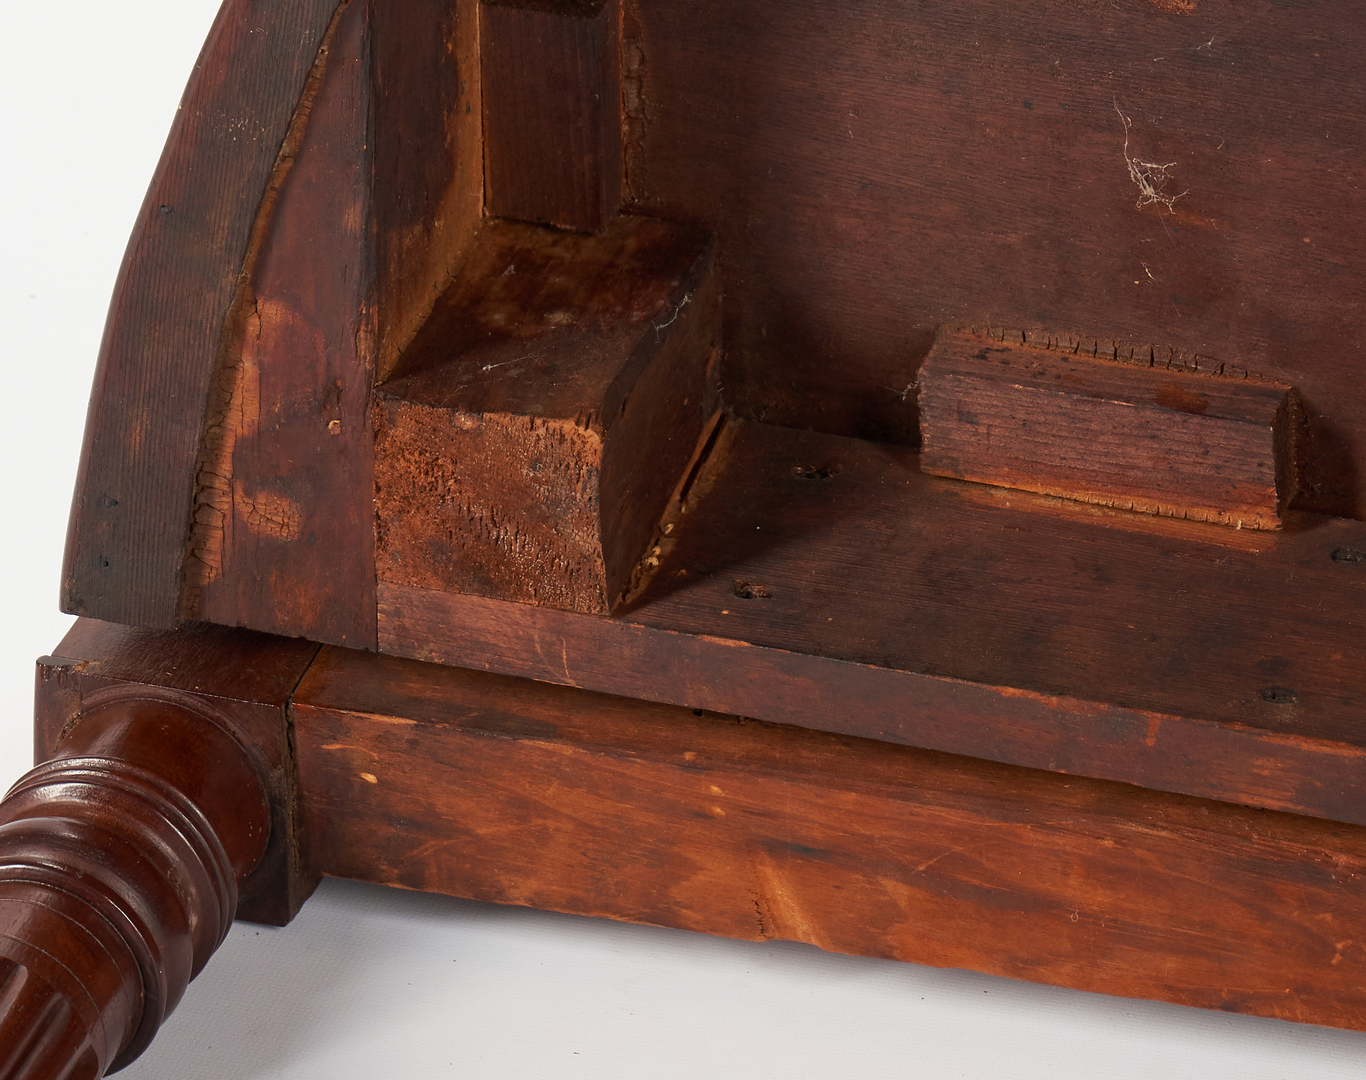 Lot 419: Diminutive Card Table, Likely Massachusetts